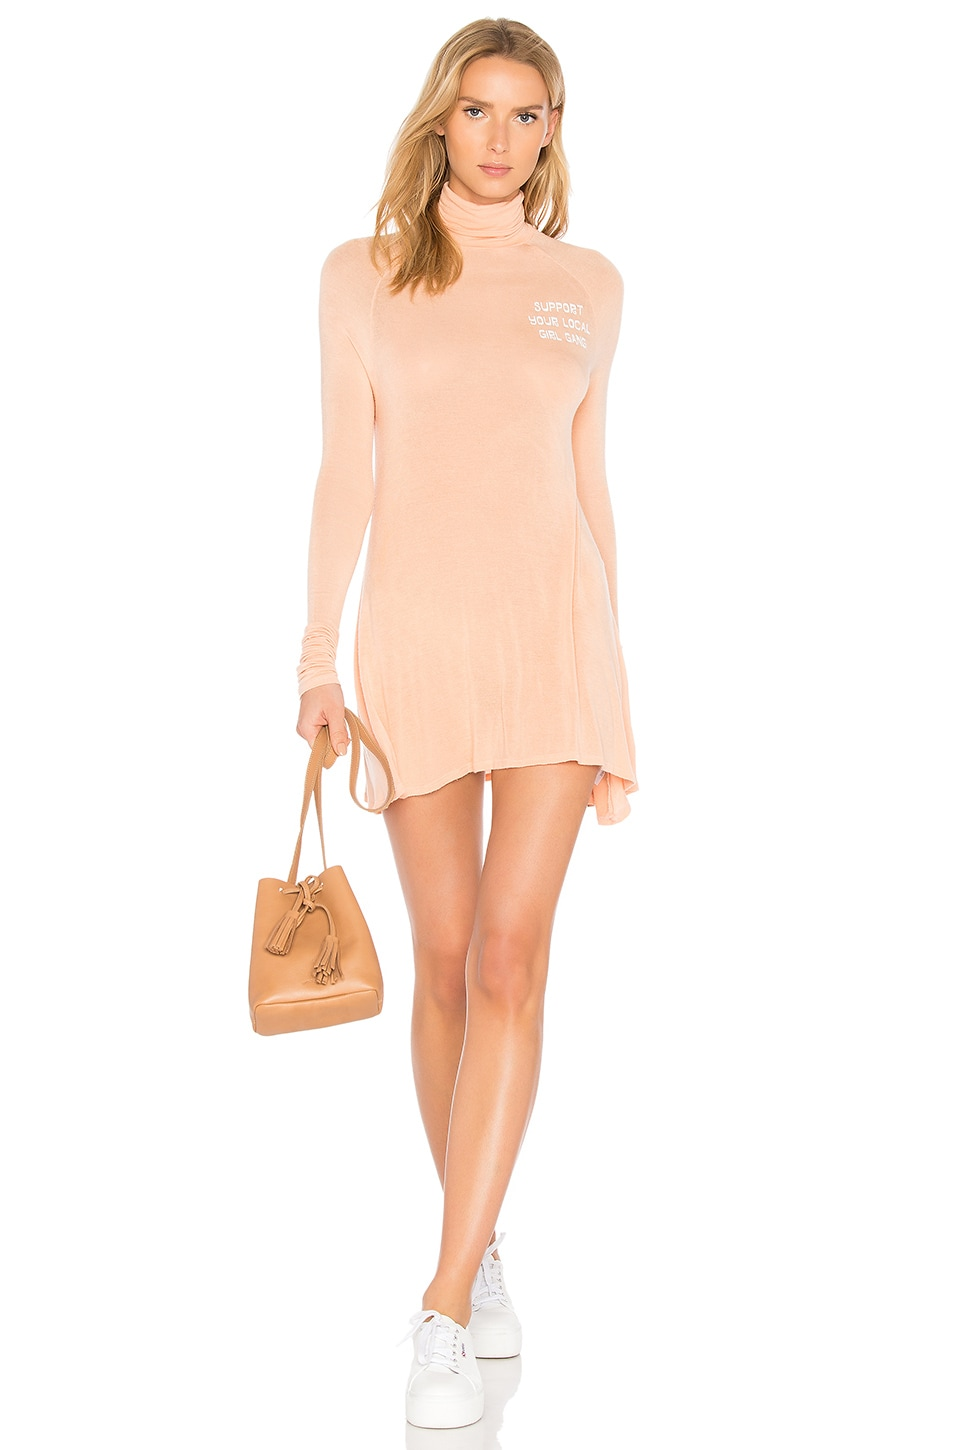 Daydream Nation Sleepy Central Perk Girl Gang Dress in Coral